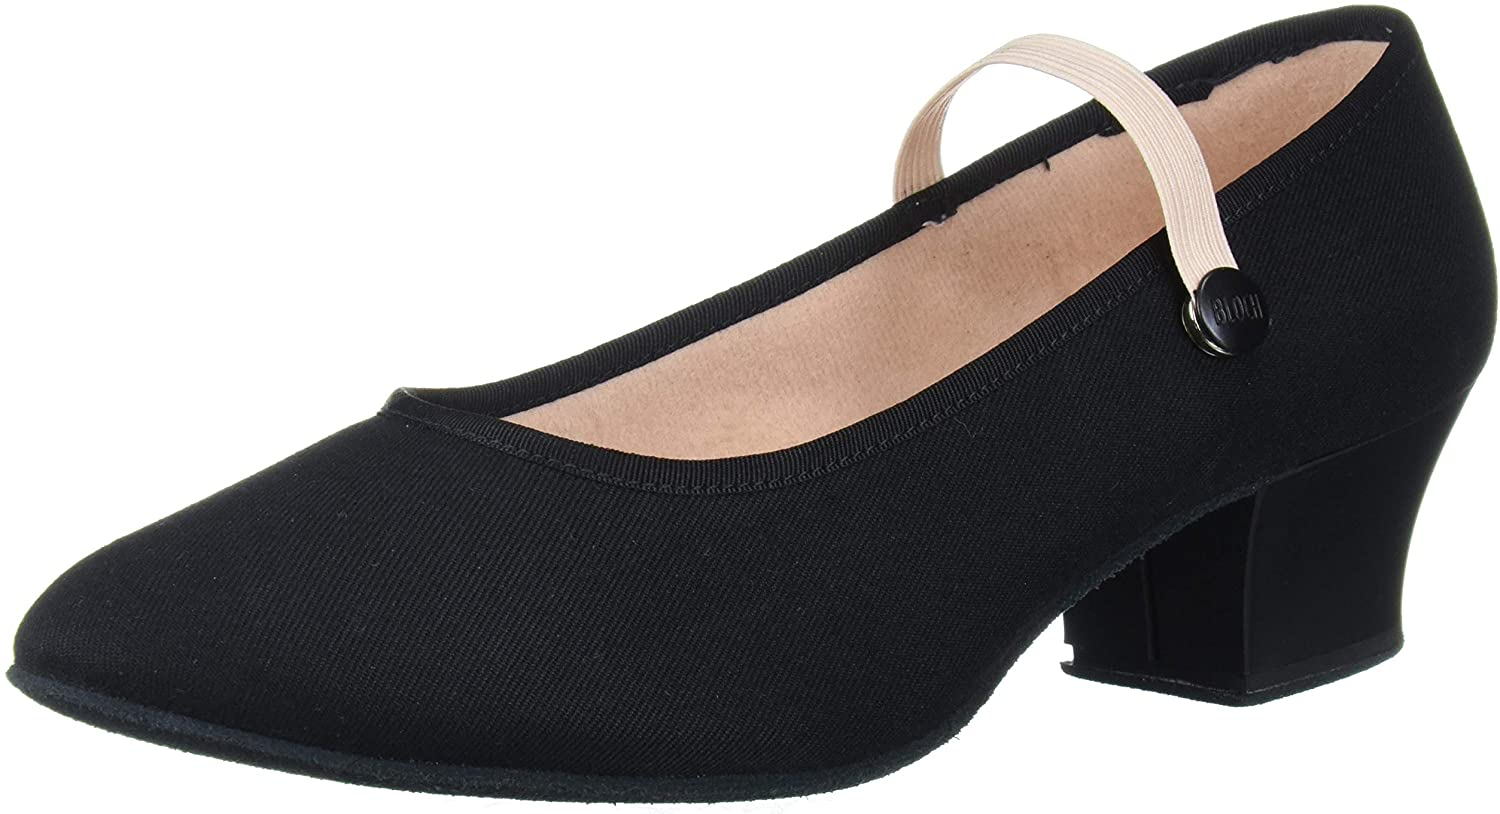 Bloch Women's Tempo Accent Character Shoes